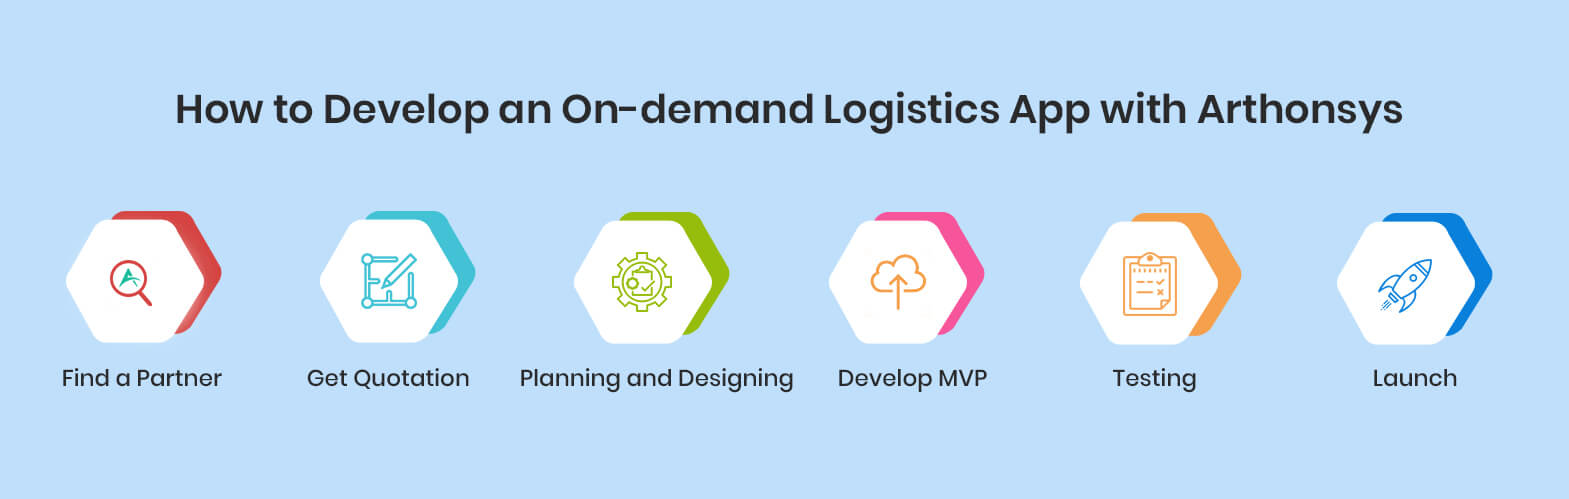 How to Develop an On-demand Logistics App with Arthonsys